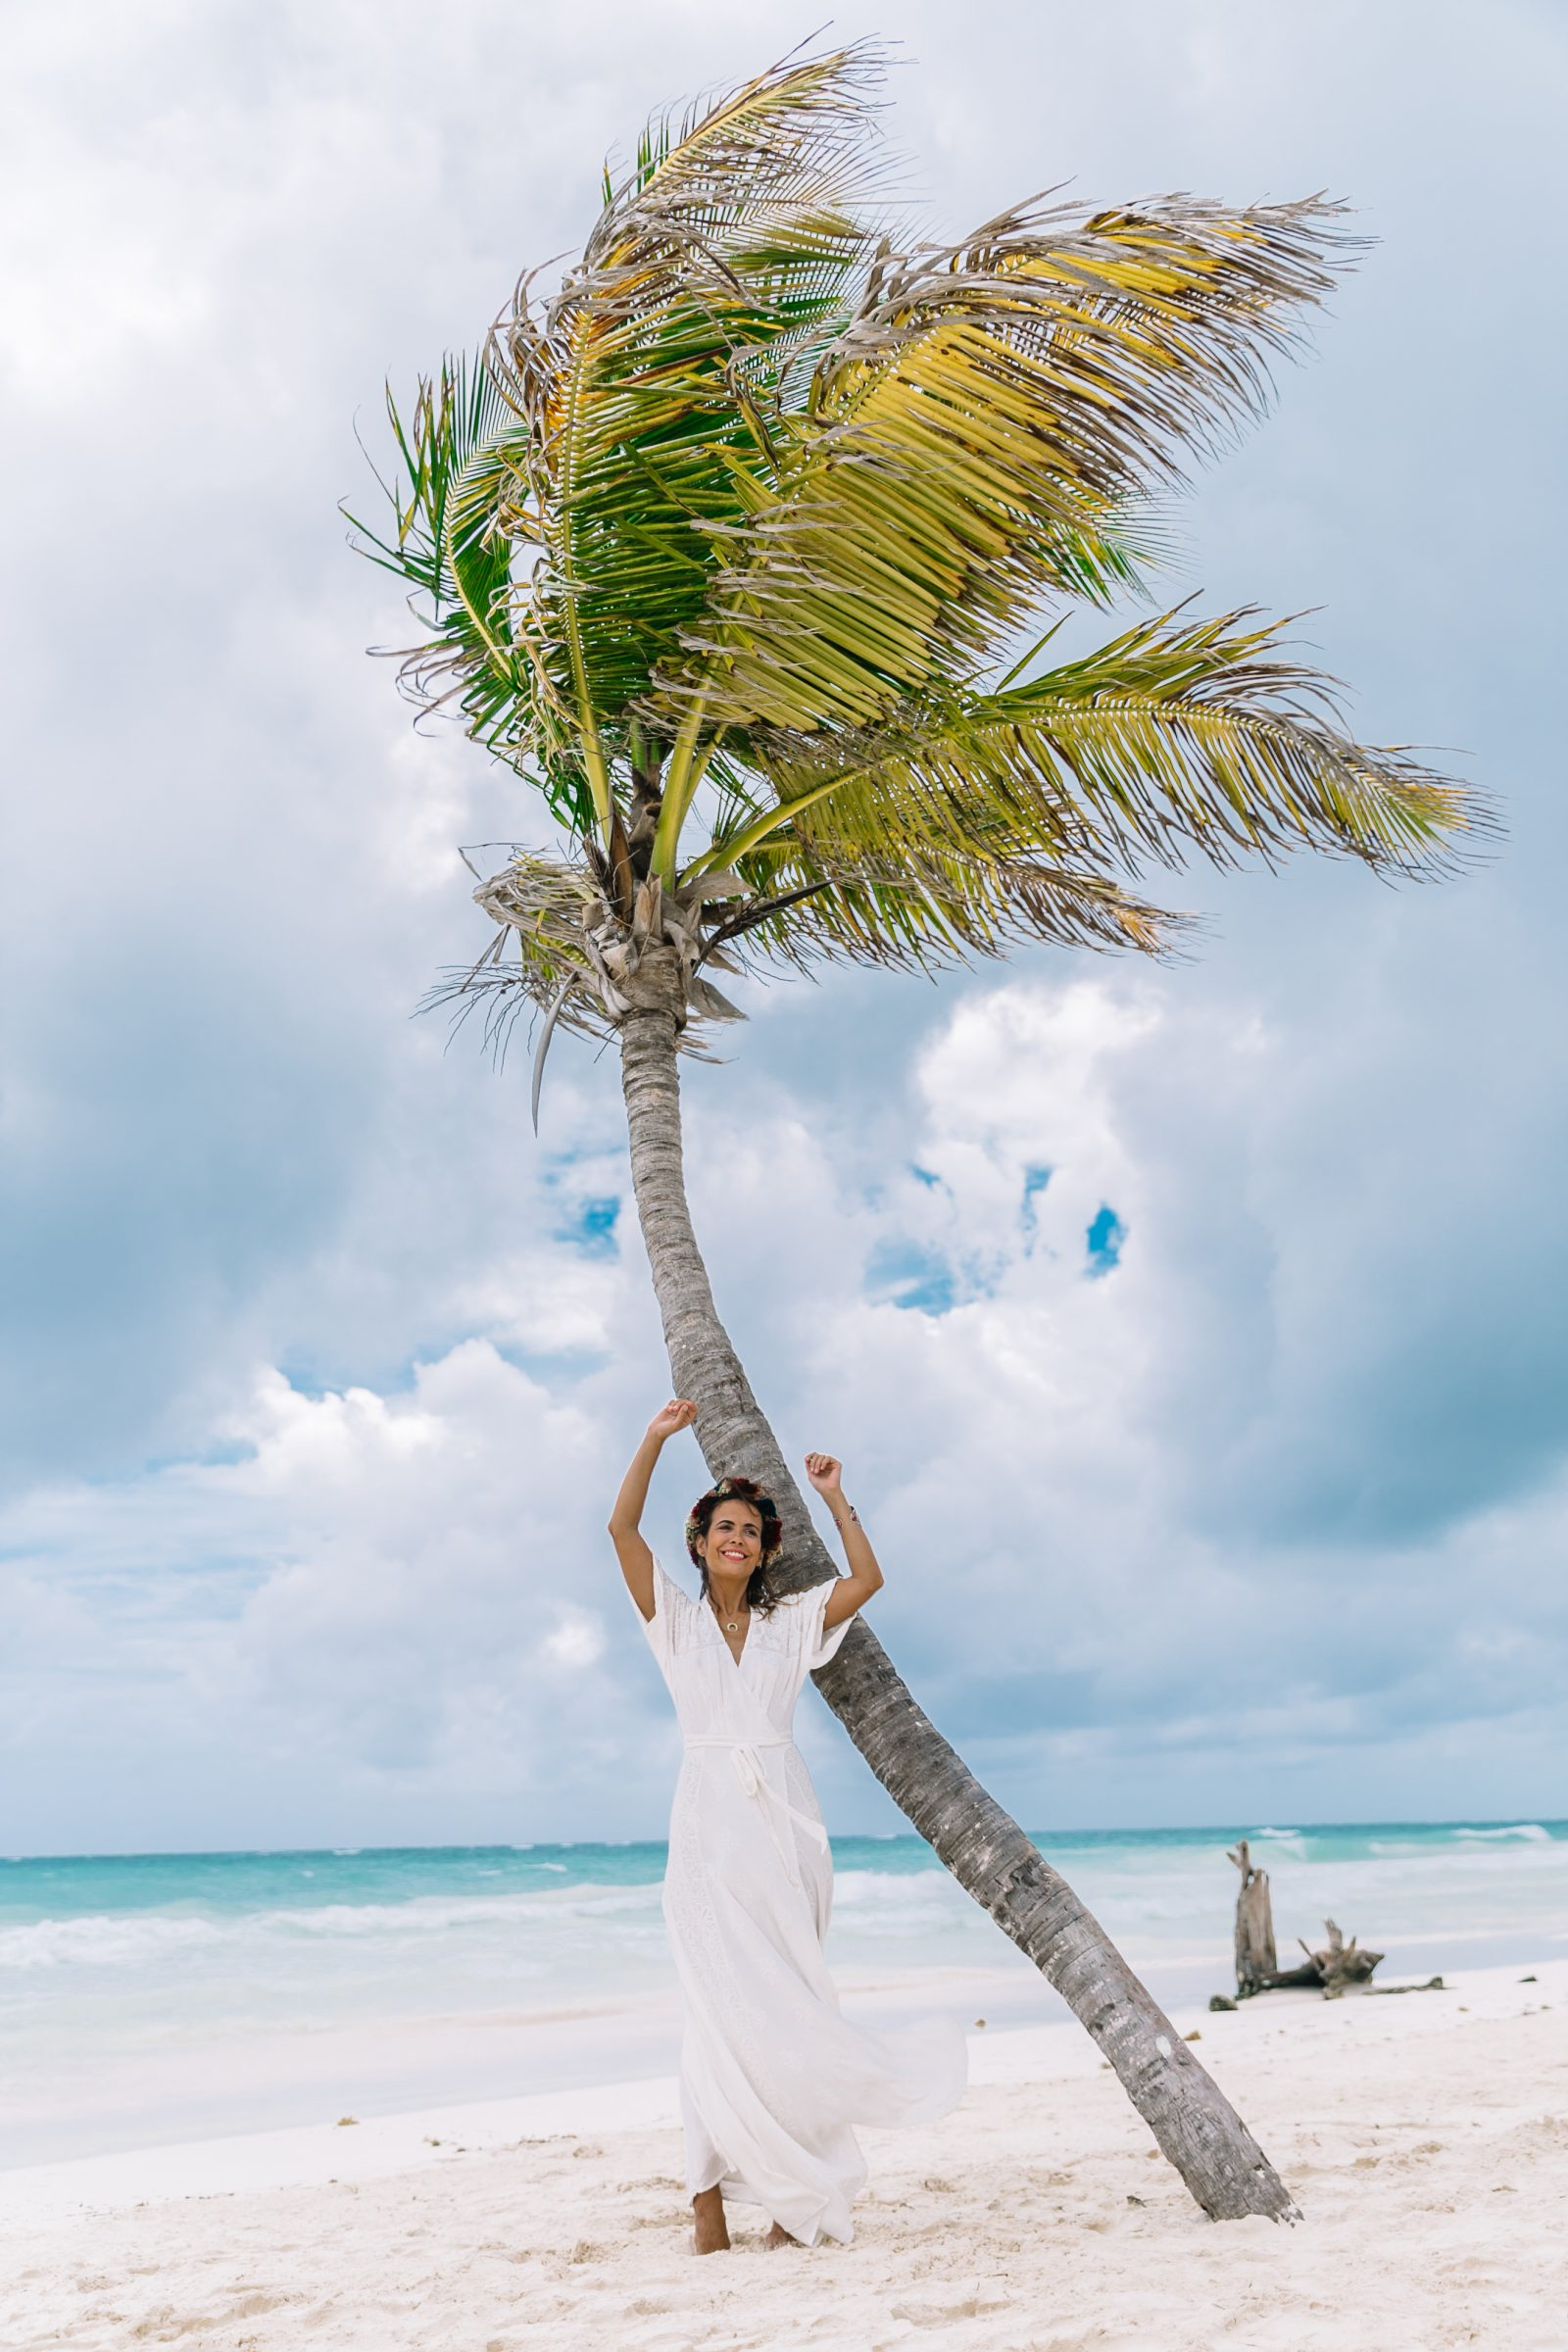 white_long_dress-boho_style-tulum_mexico-beach-floral_crown-outfit-collage_vintage-18